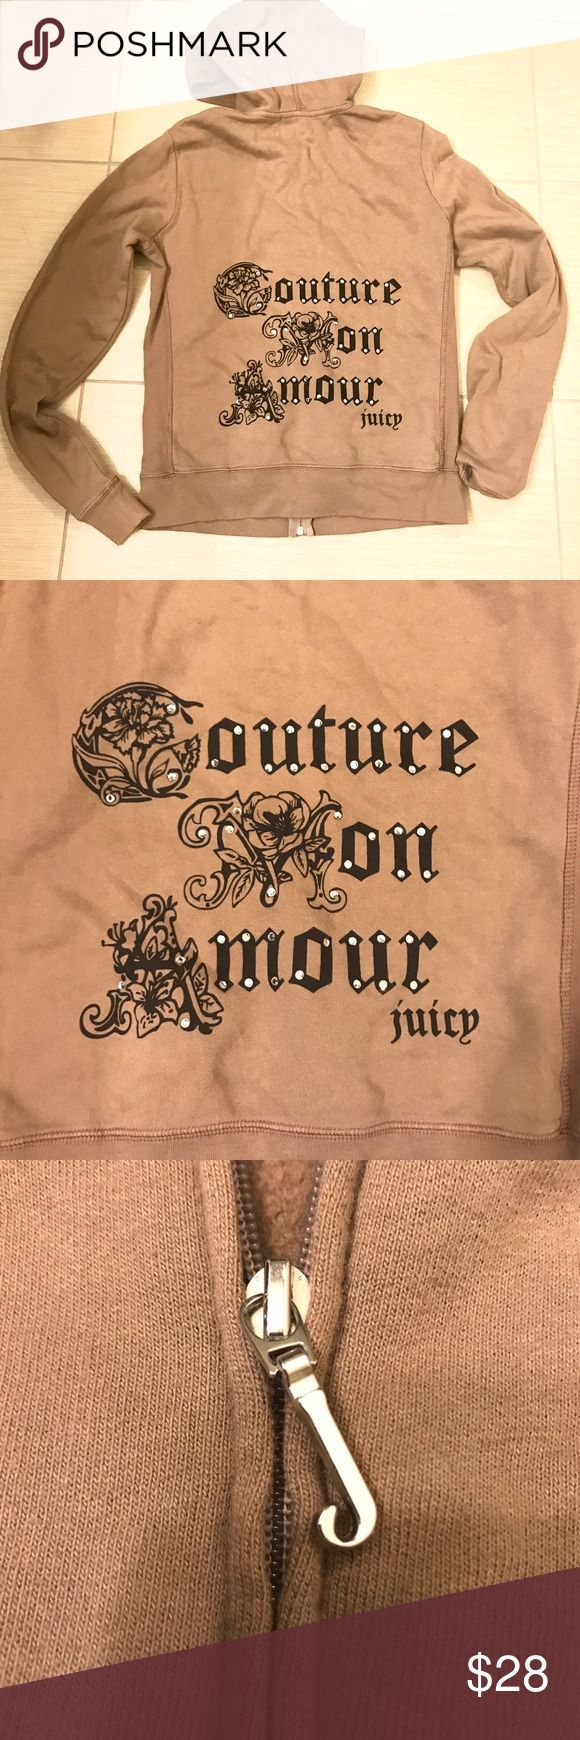 Juicy Couture Rhinestone Hoodie Juicy Couture Rhinestone Embellished hoodie zip up jacket. Super comfy! Light brown color. Runs small and I needed to size up. Ask questions! 😊 Worn a handful of times, great condition! Juicy Couture Tops Sweatshirts & Hoodies